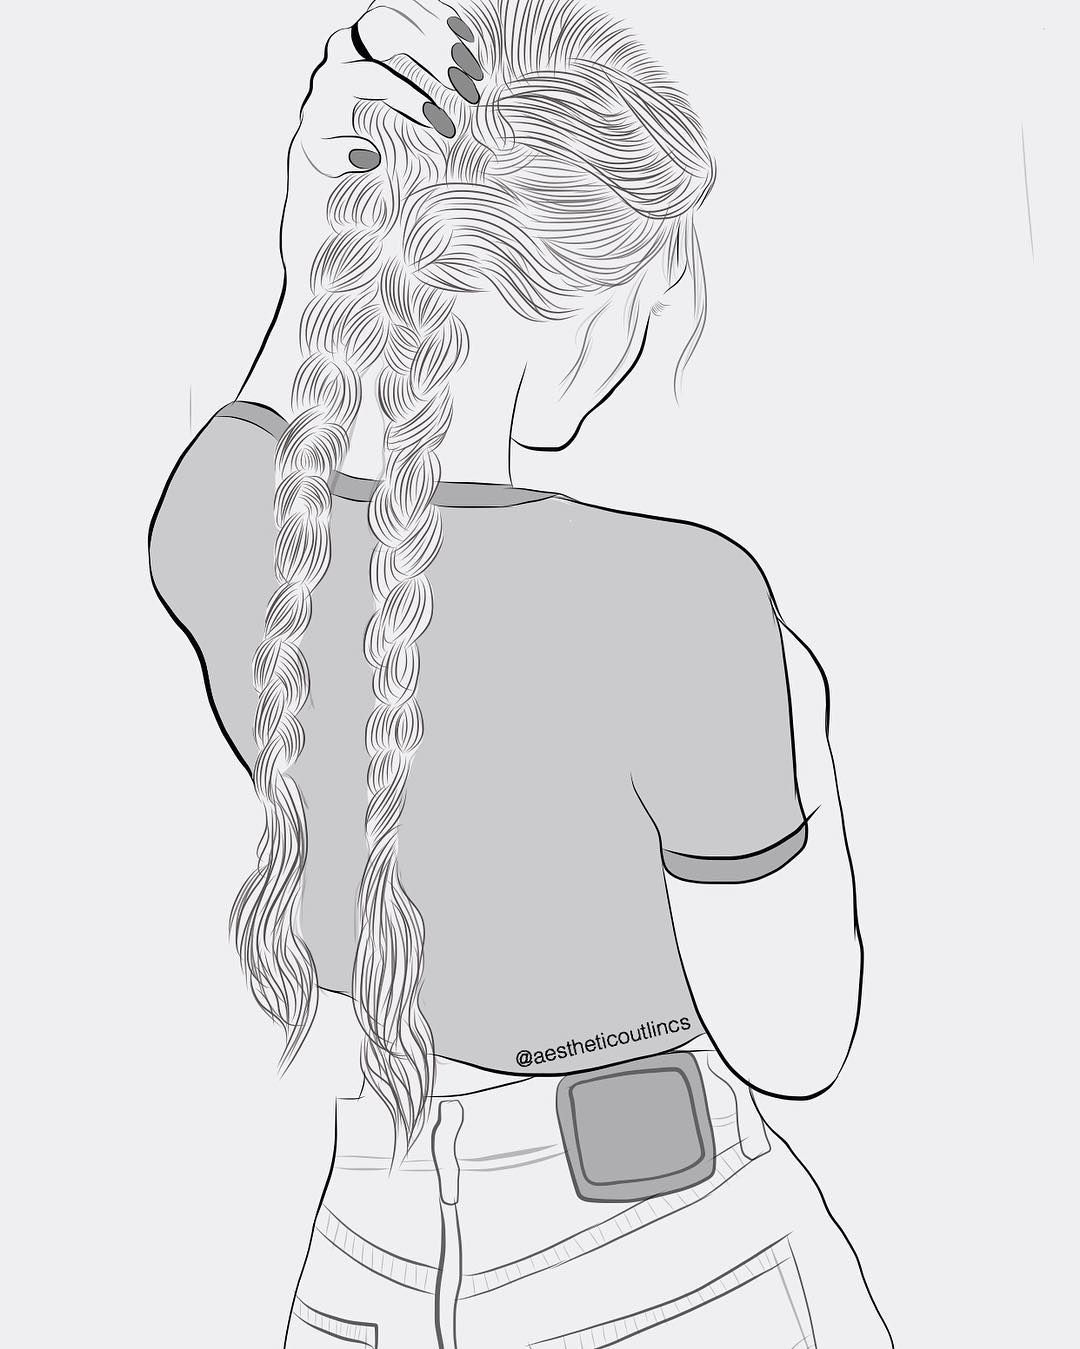 tumblr, outline, tumblr outline, idea, girl, illustration, drawings, art